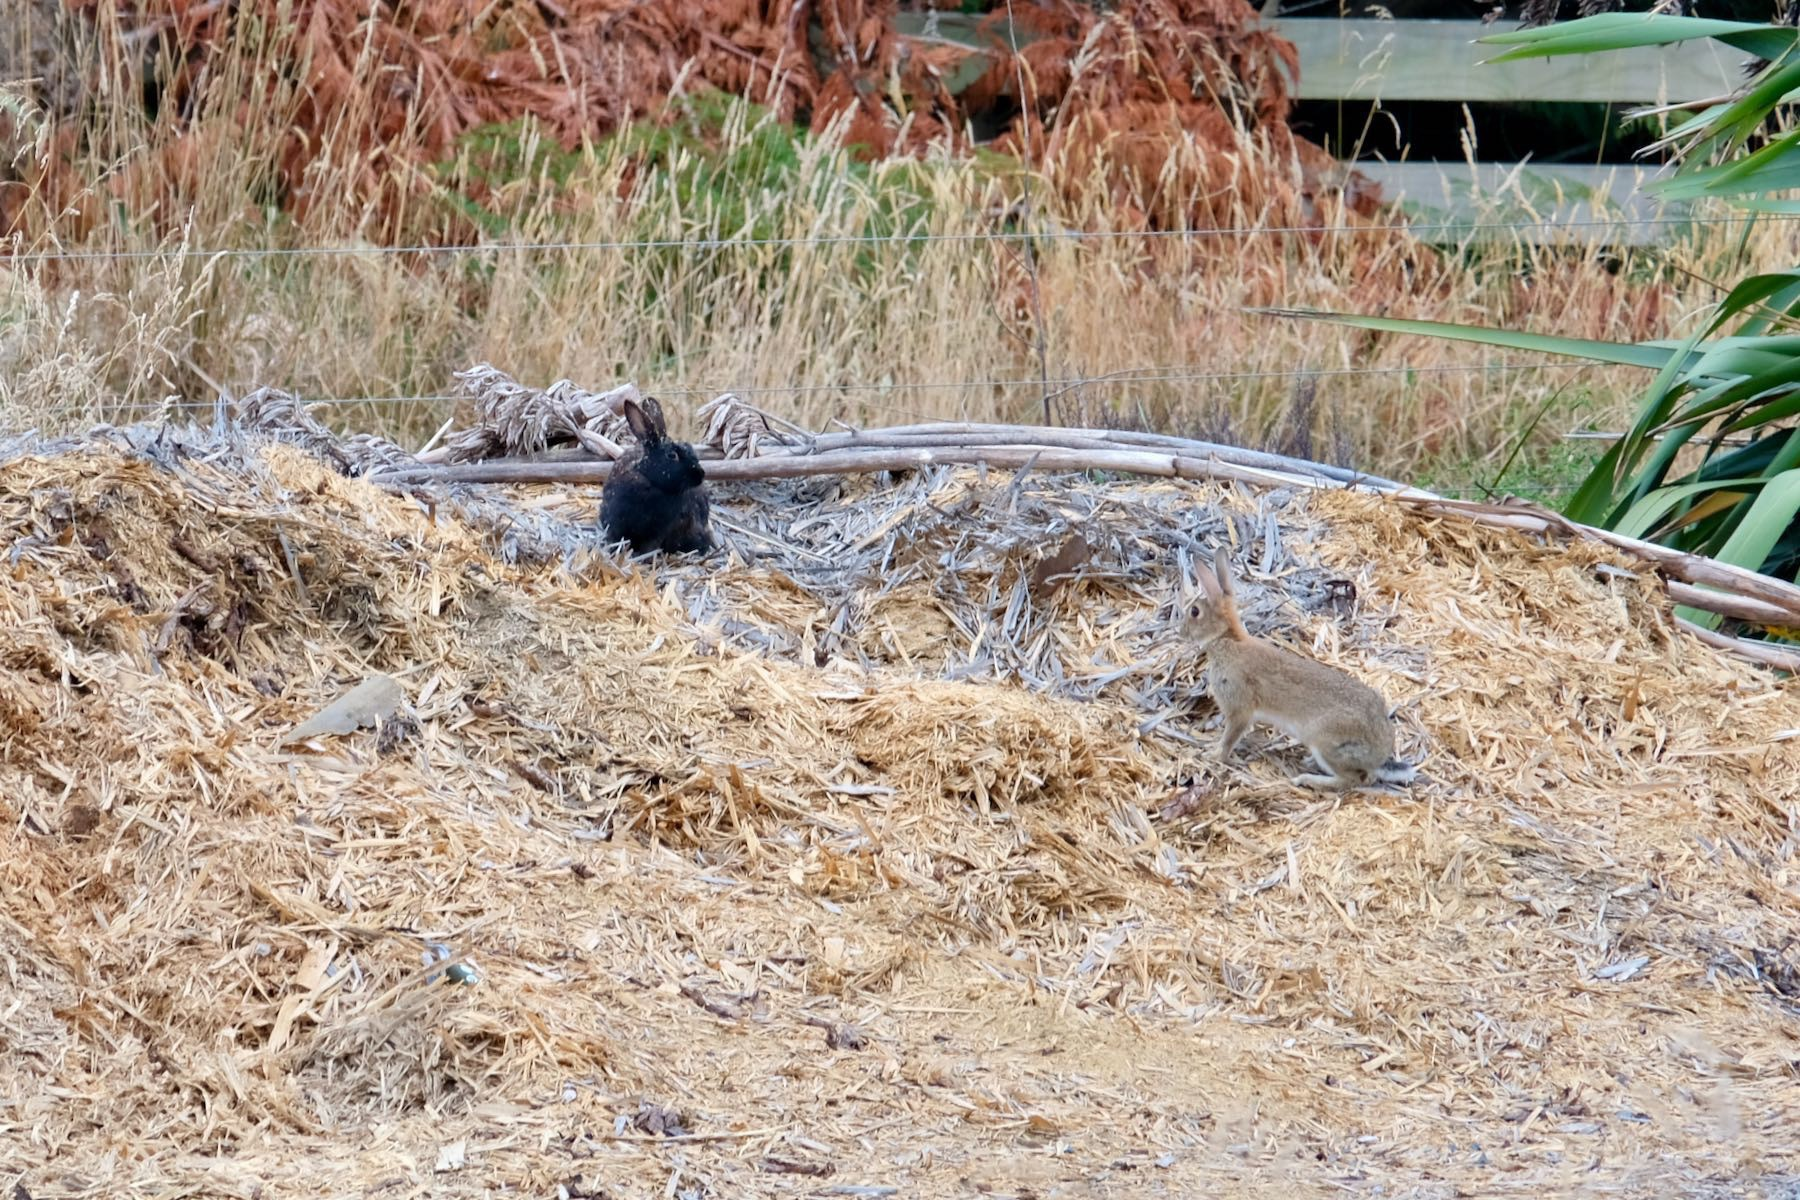 Black rabbit and grey rabbit on top of a pile of mulch.